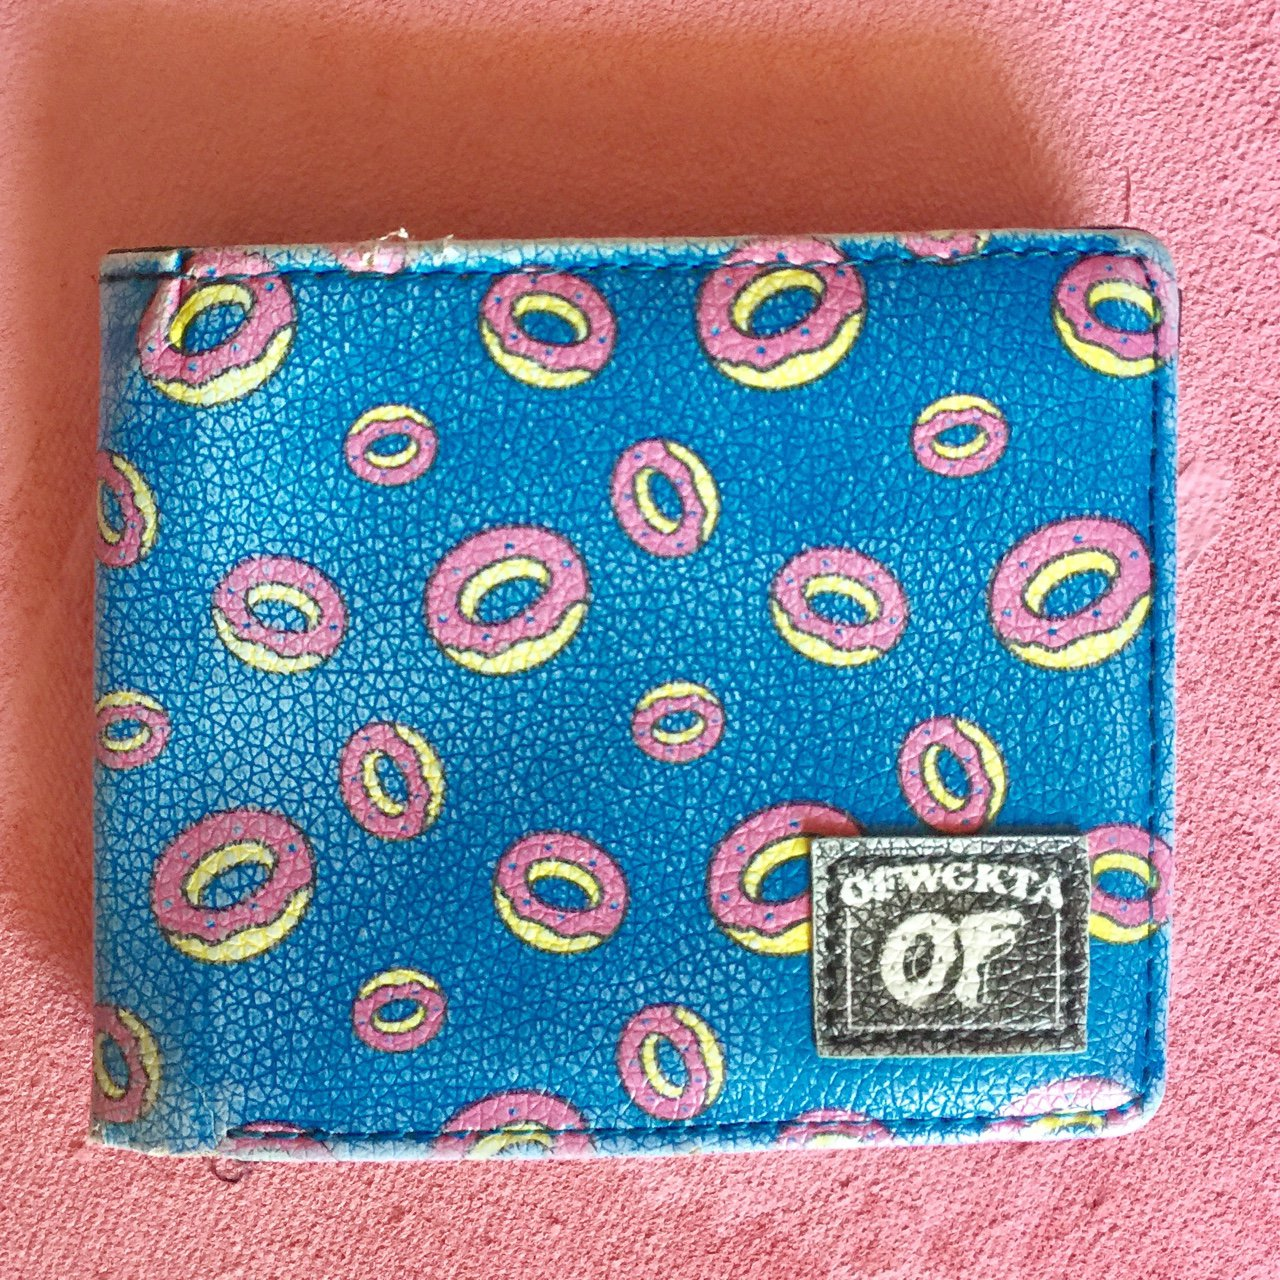 7e491ad105cc Odd future donut turquoise bifold wallet condition signs depop jpg  1280x1280 Odd future wallet